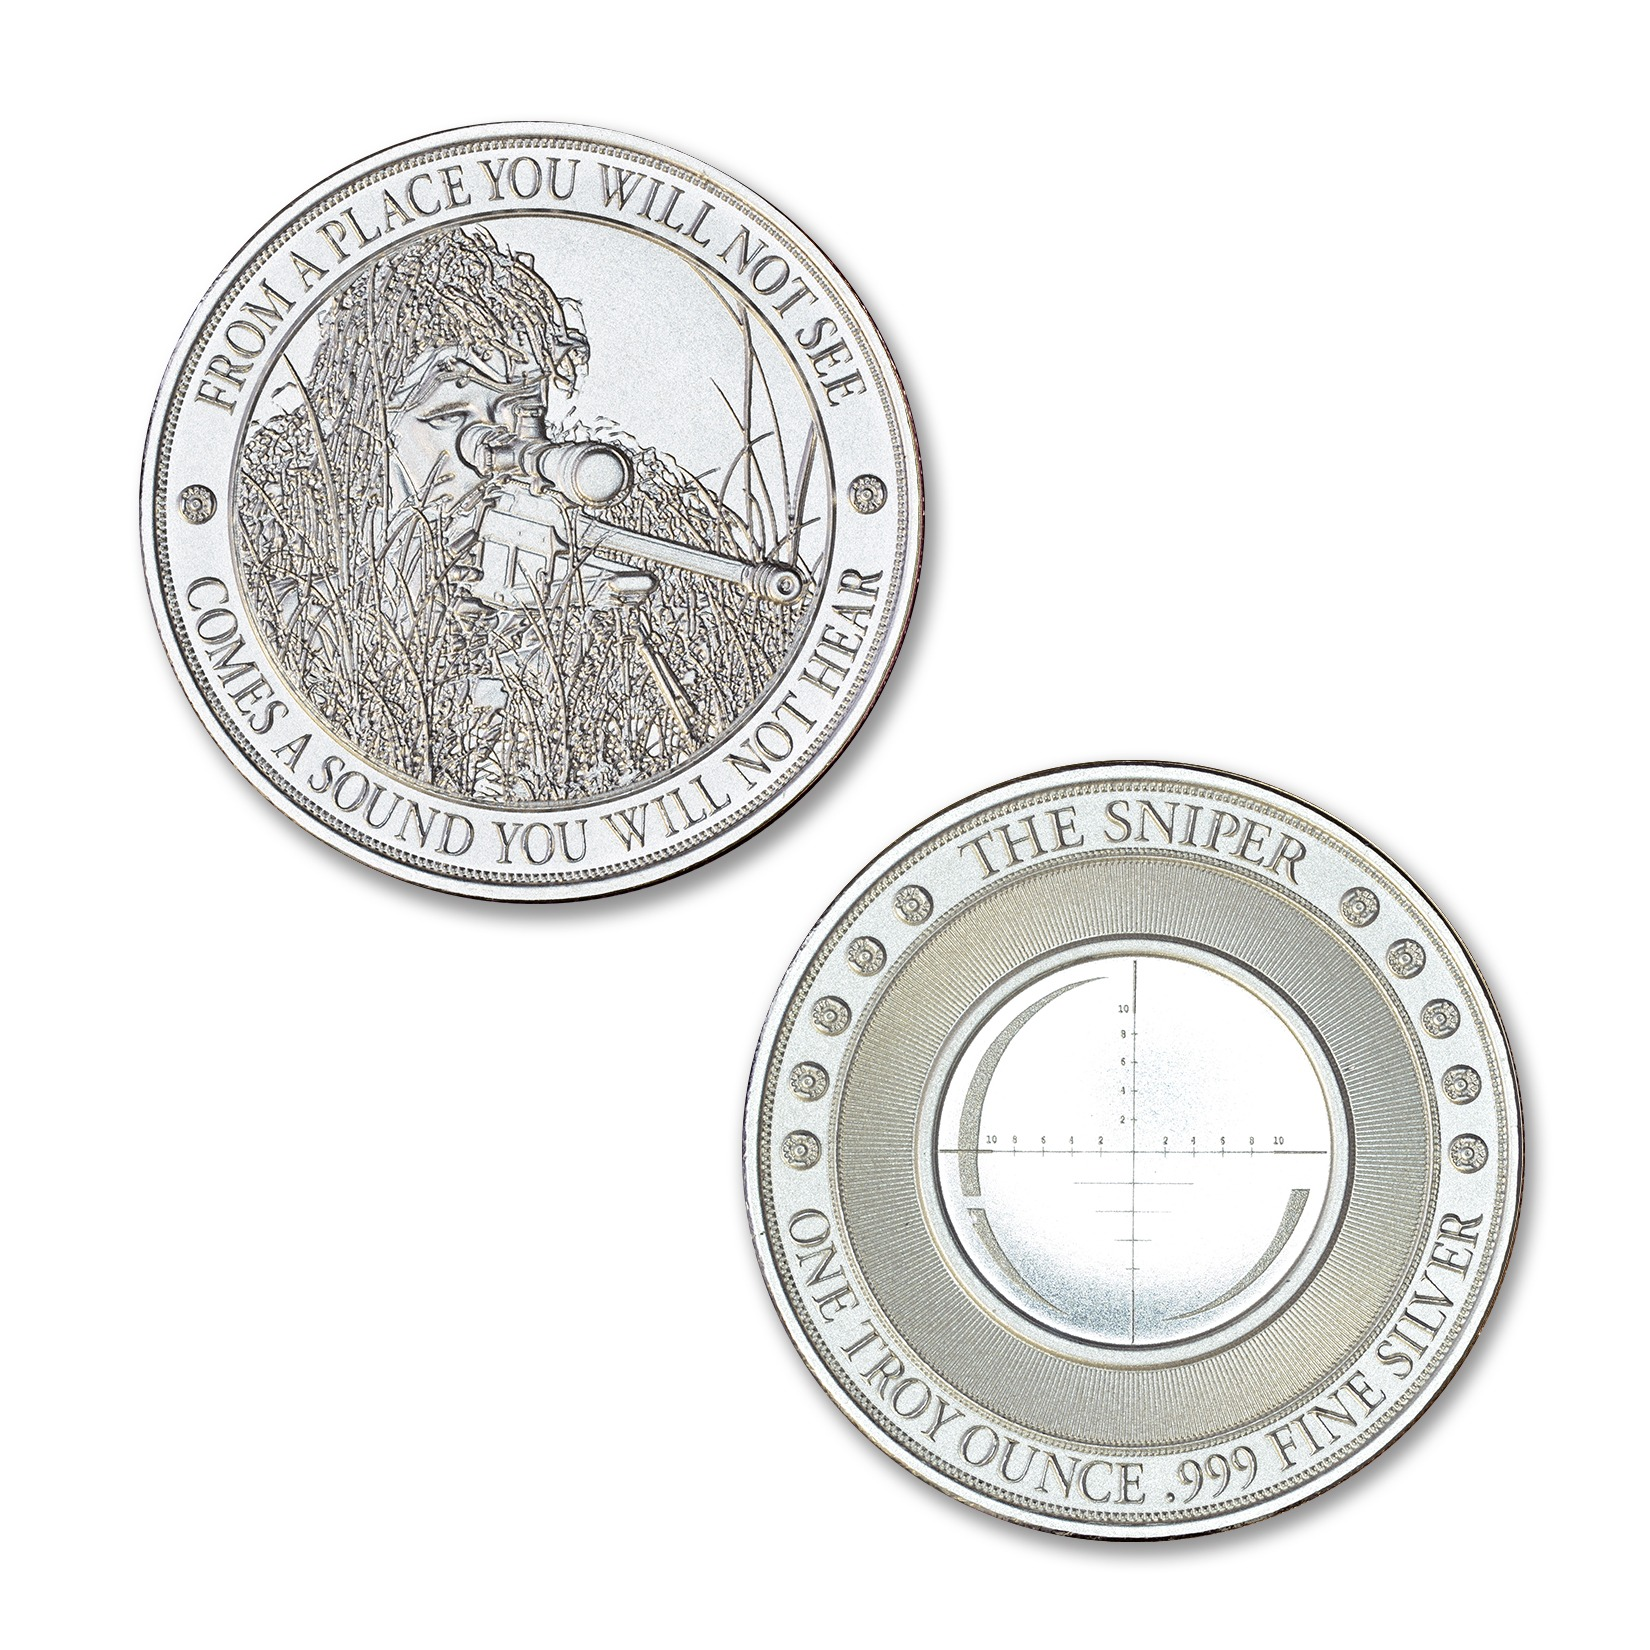 SNIPER – 1 TROY OUNCE – 39MM